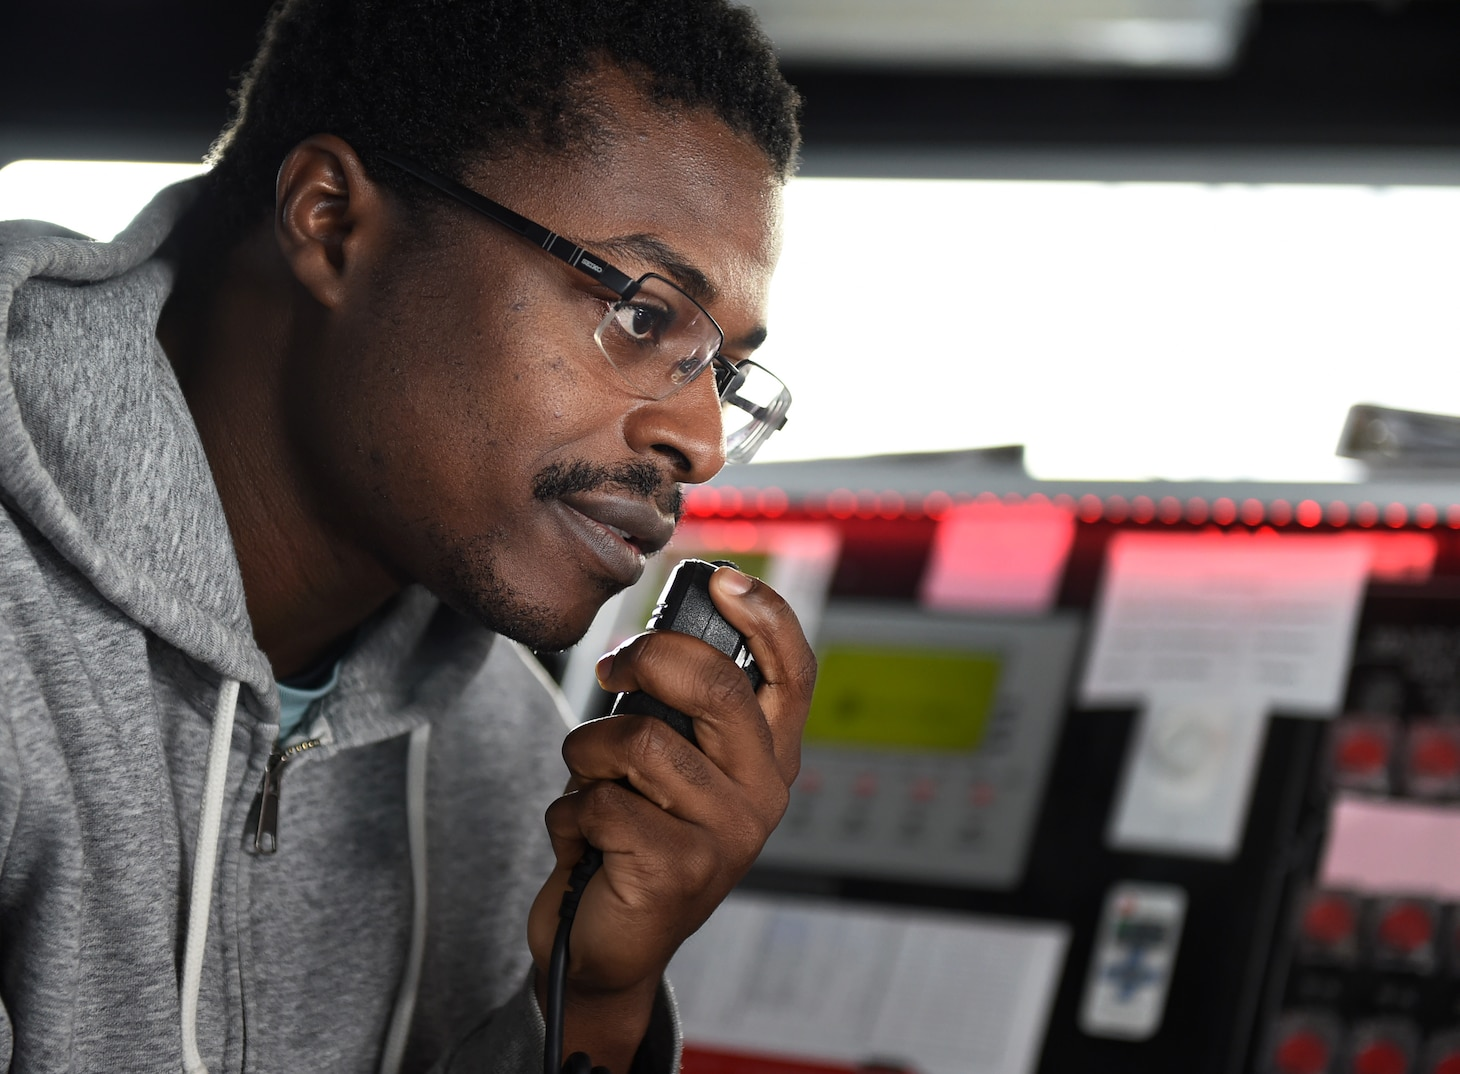 MSC Civil Service Mariner Abraham Asante, first engineer of the Spearhead-class expeditionary fast transport ship USNS Carson City (T-EPF 7), talks with an engineering team conducting rounds while standing bridge watch in support of the ship's Africa Partnership Station deployment.